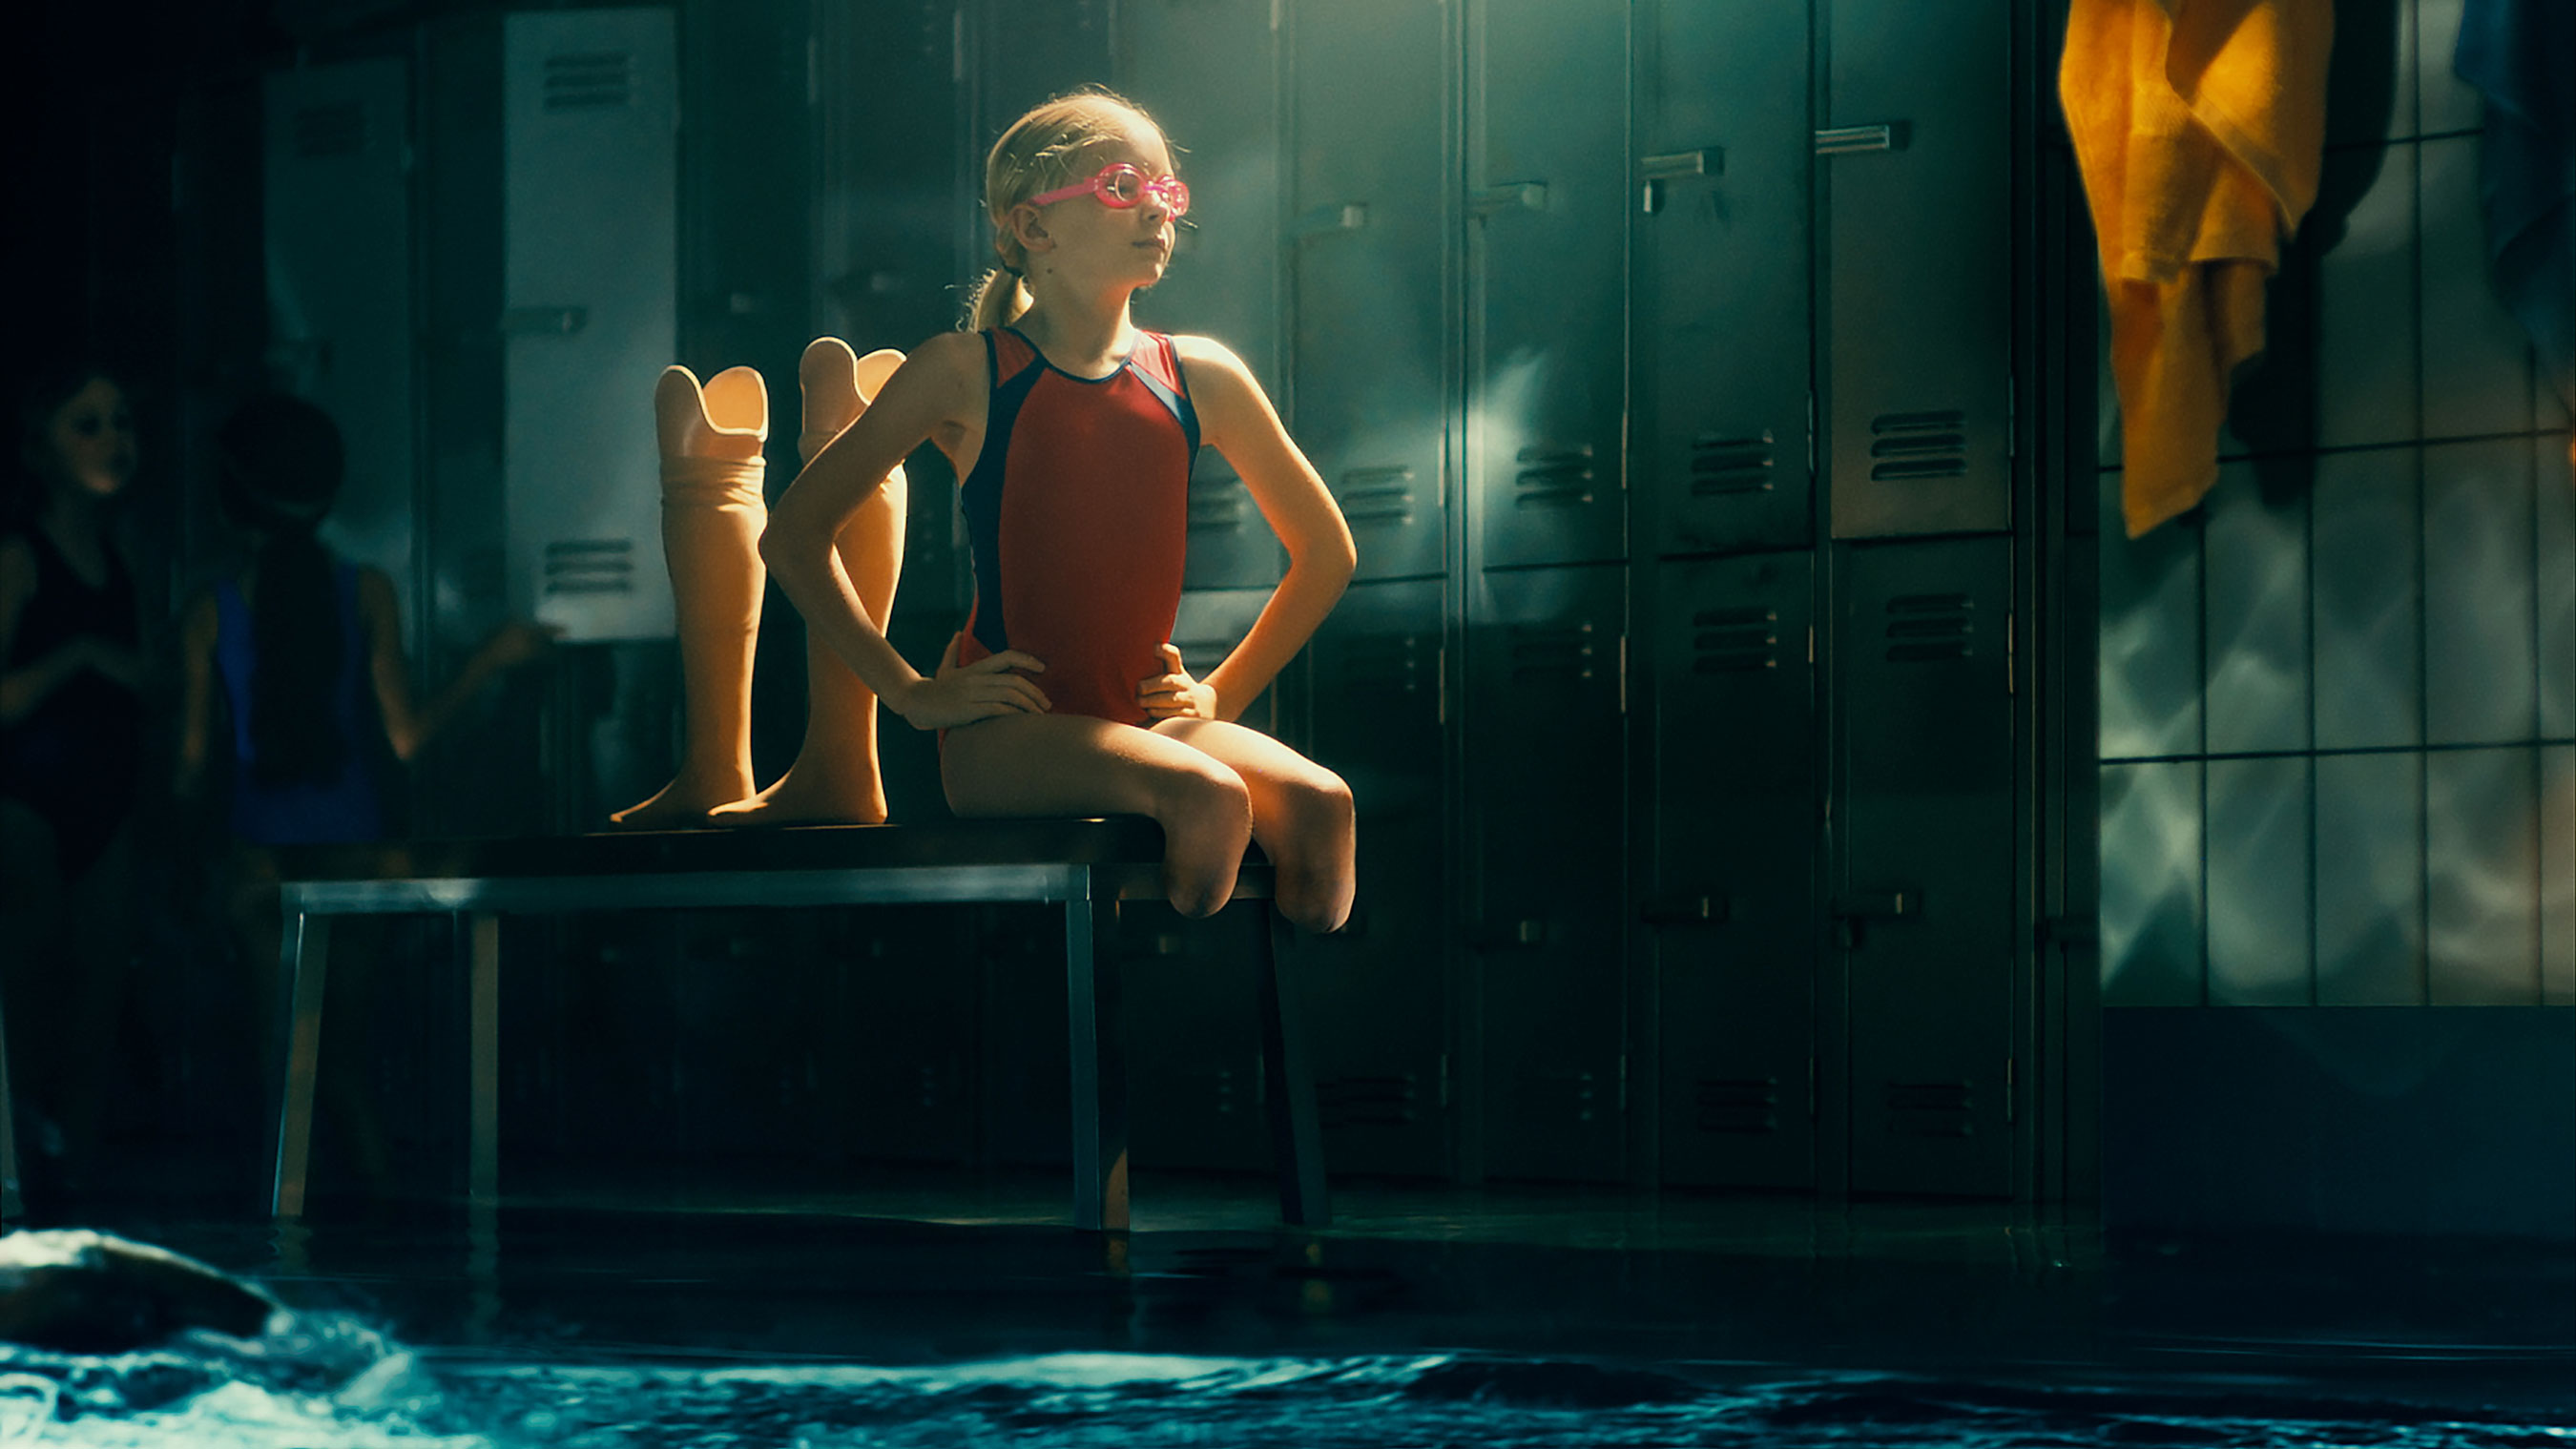 Toyota Shares Messages of Hope, Strength and Social Responsibility in Emotional Big Game Spots